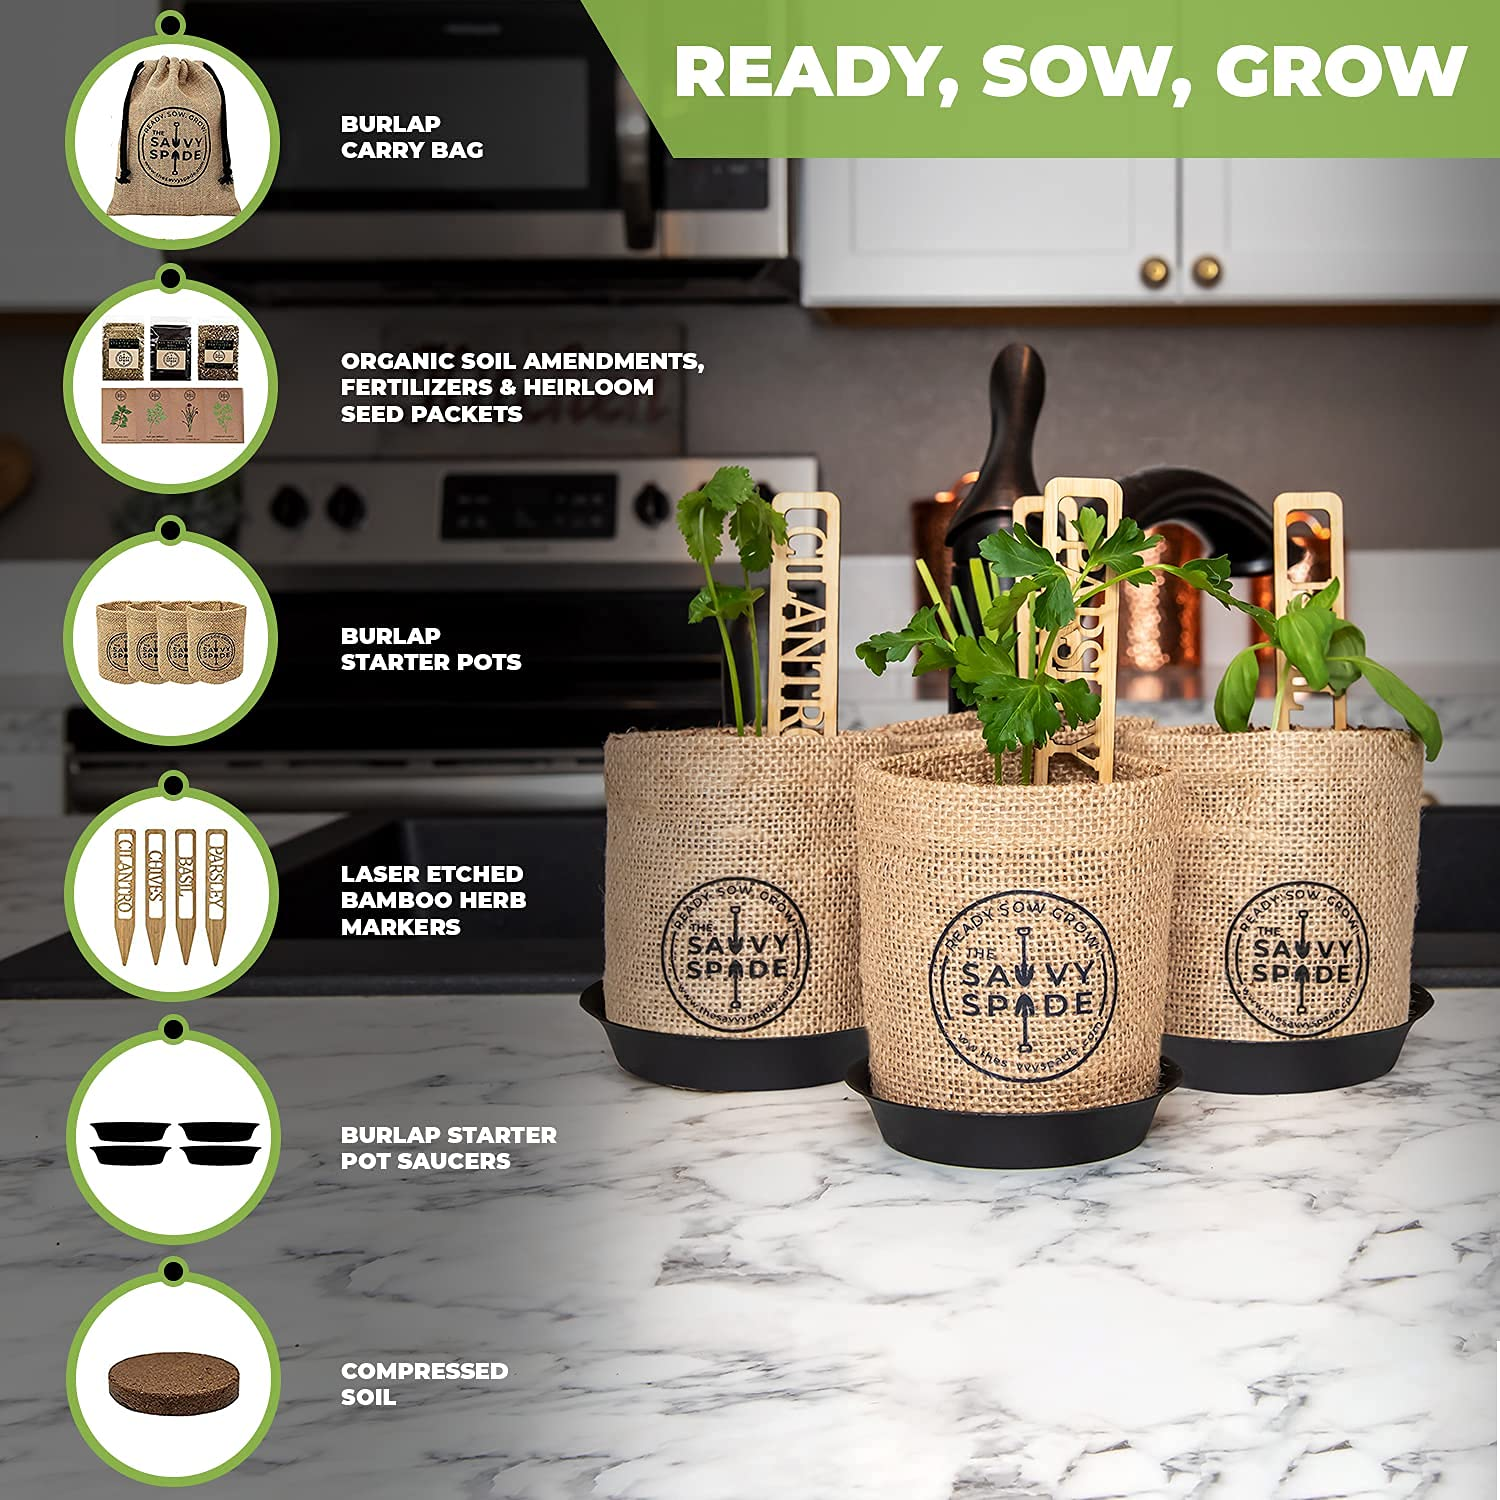 Herb Garden Kit Indoor - Non GMO, Heirloom Herb Seeds - Cilantro, Chives, Parsley and Basil Seeds for Planting - Gardening Gifts - Made in USA